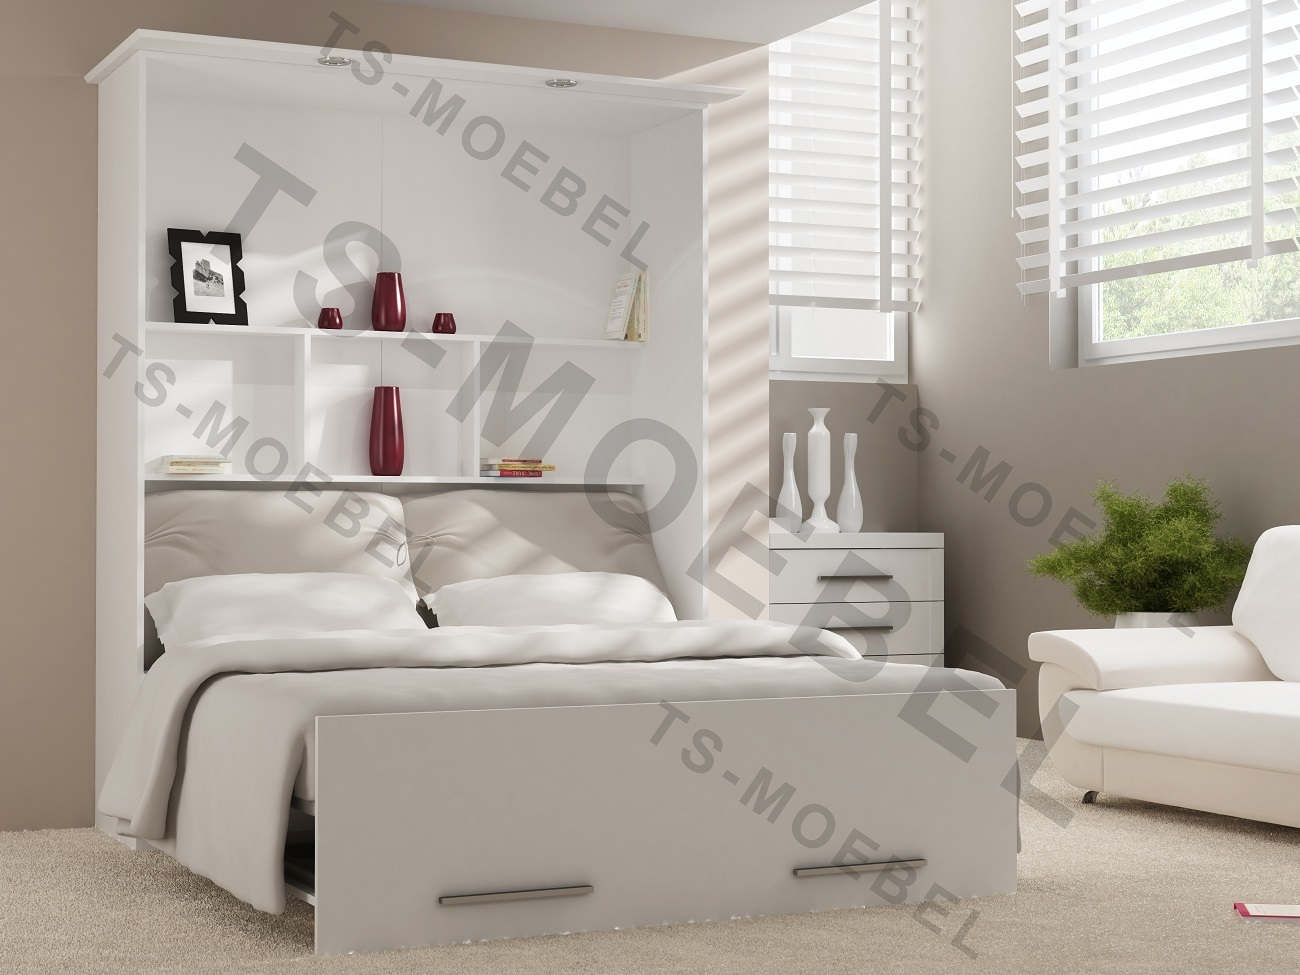 wandbett schrankbett 50 w 4 160 x 200 cm mit 2 schr nken in weiss. Black Bedroom Furniture Sets. Home Design Ideas